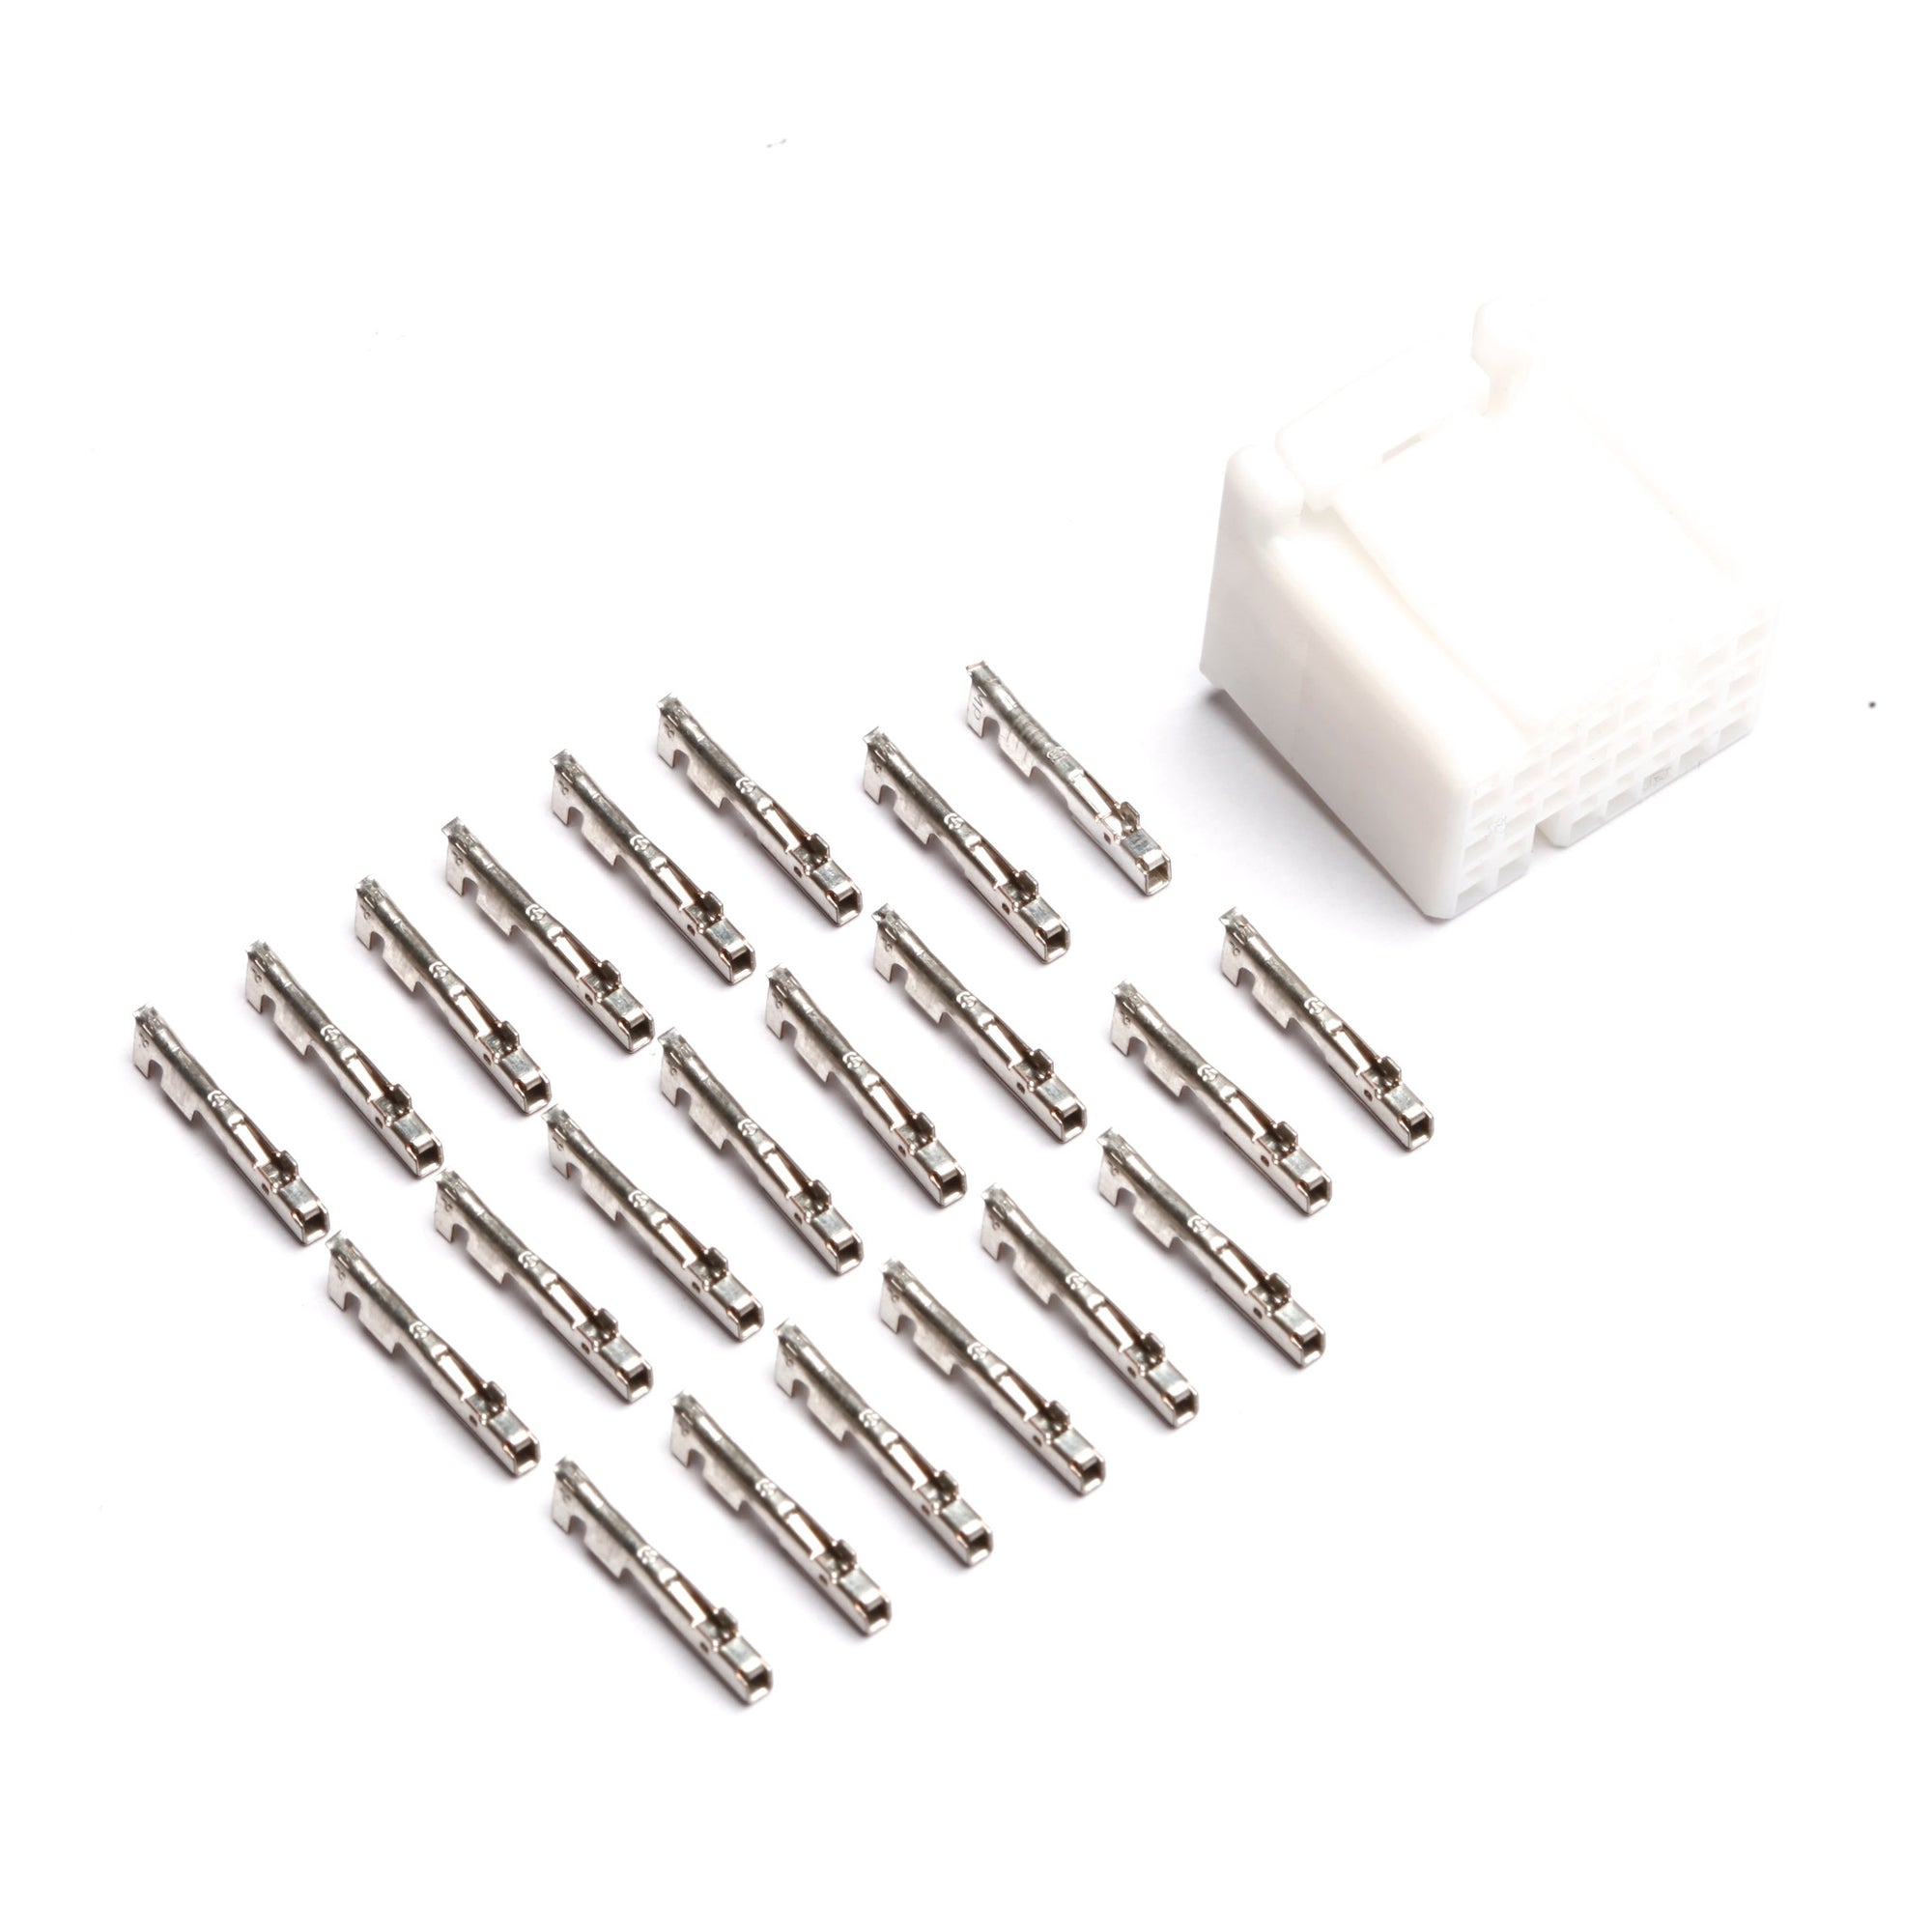 Connectors - Honda K-Series 'C' Plug Connector Kit